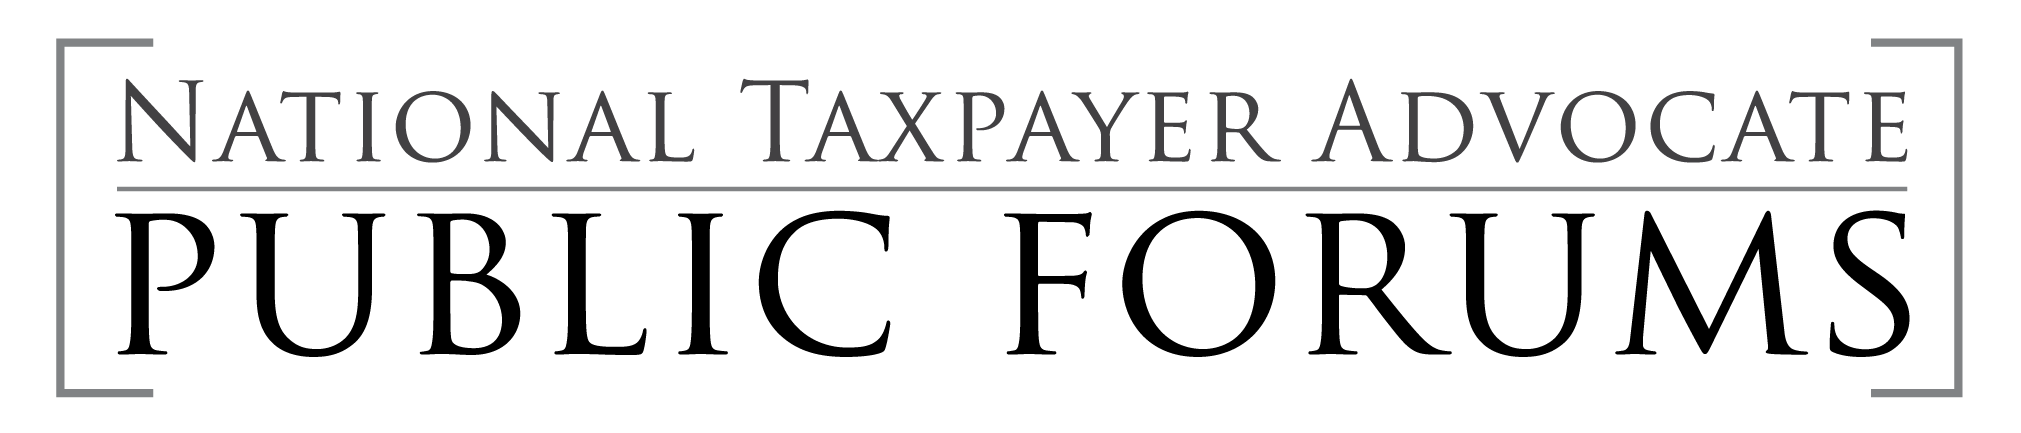 National Taxpayer Advocate Public Forums